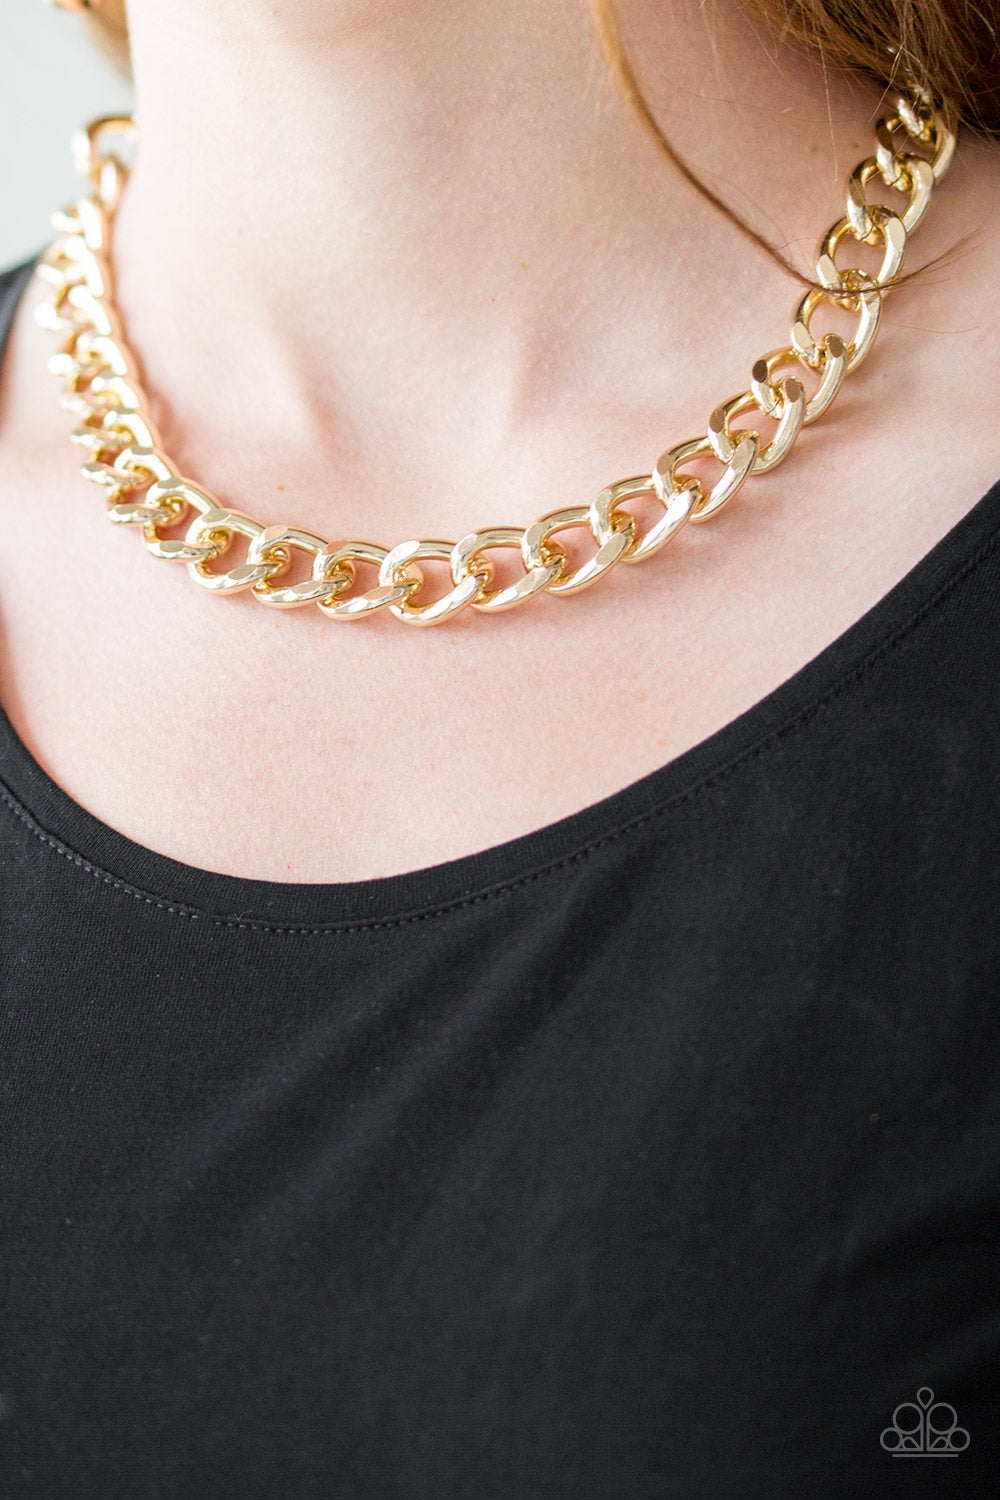 Brushed in a high-sheen shimmer, a bold gold chain drapes below the collar in an edgy industrial fashion. Features an adjustable clasp closure.  Sold as one individual necklace. Includes one pair of matching earrings.